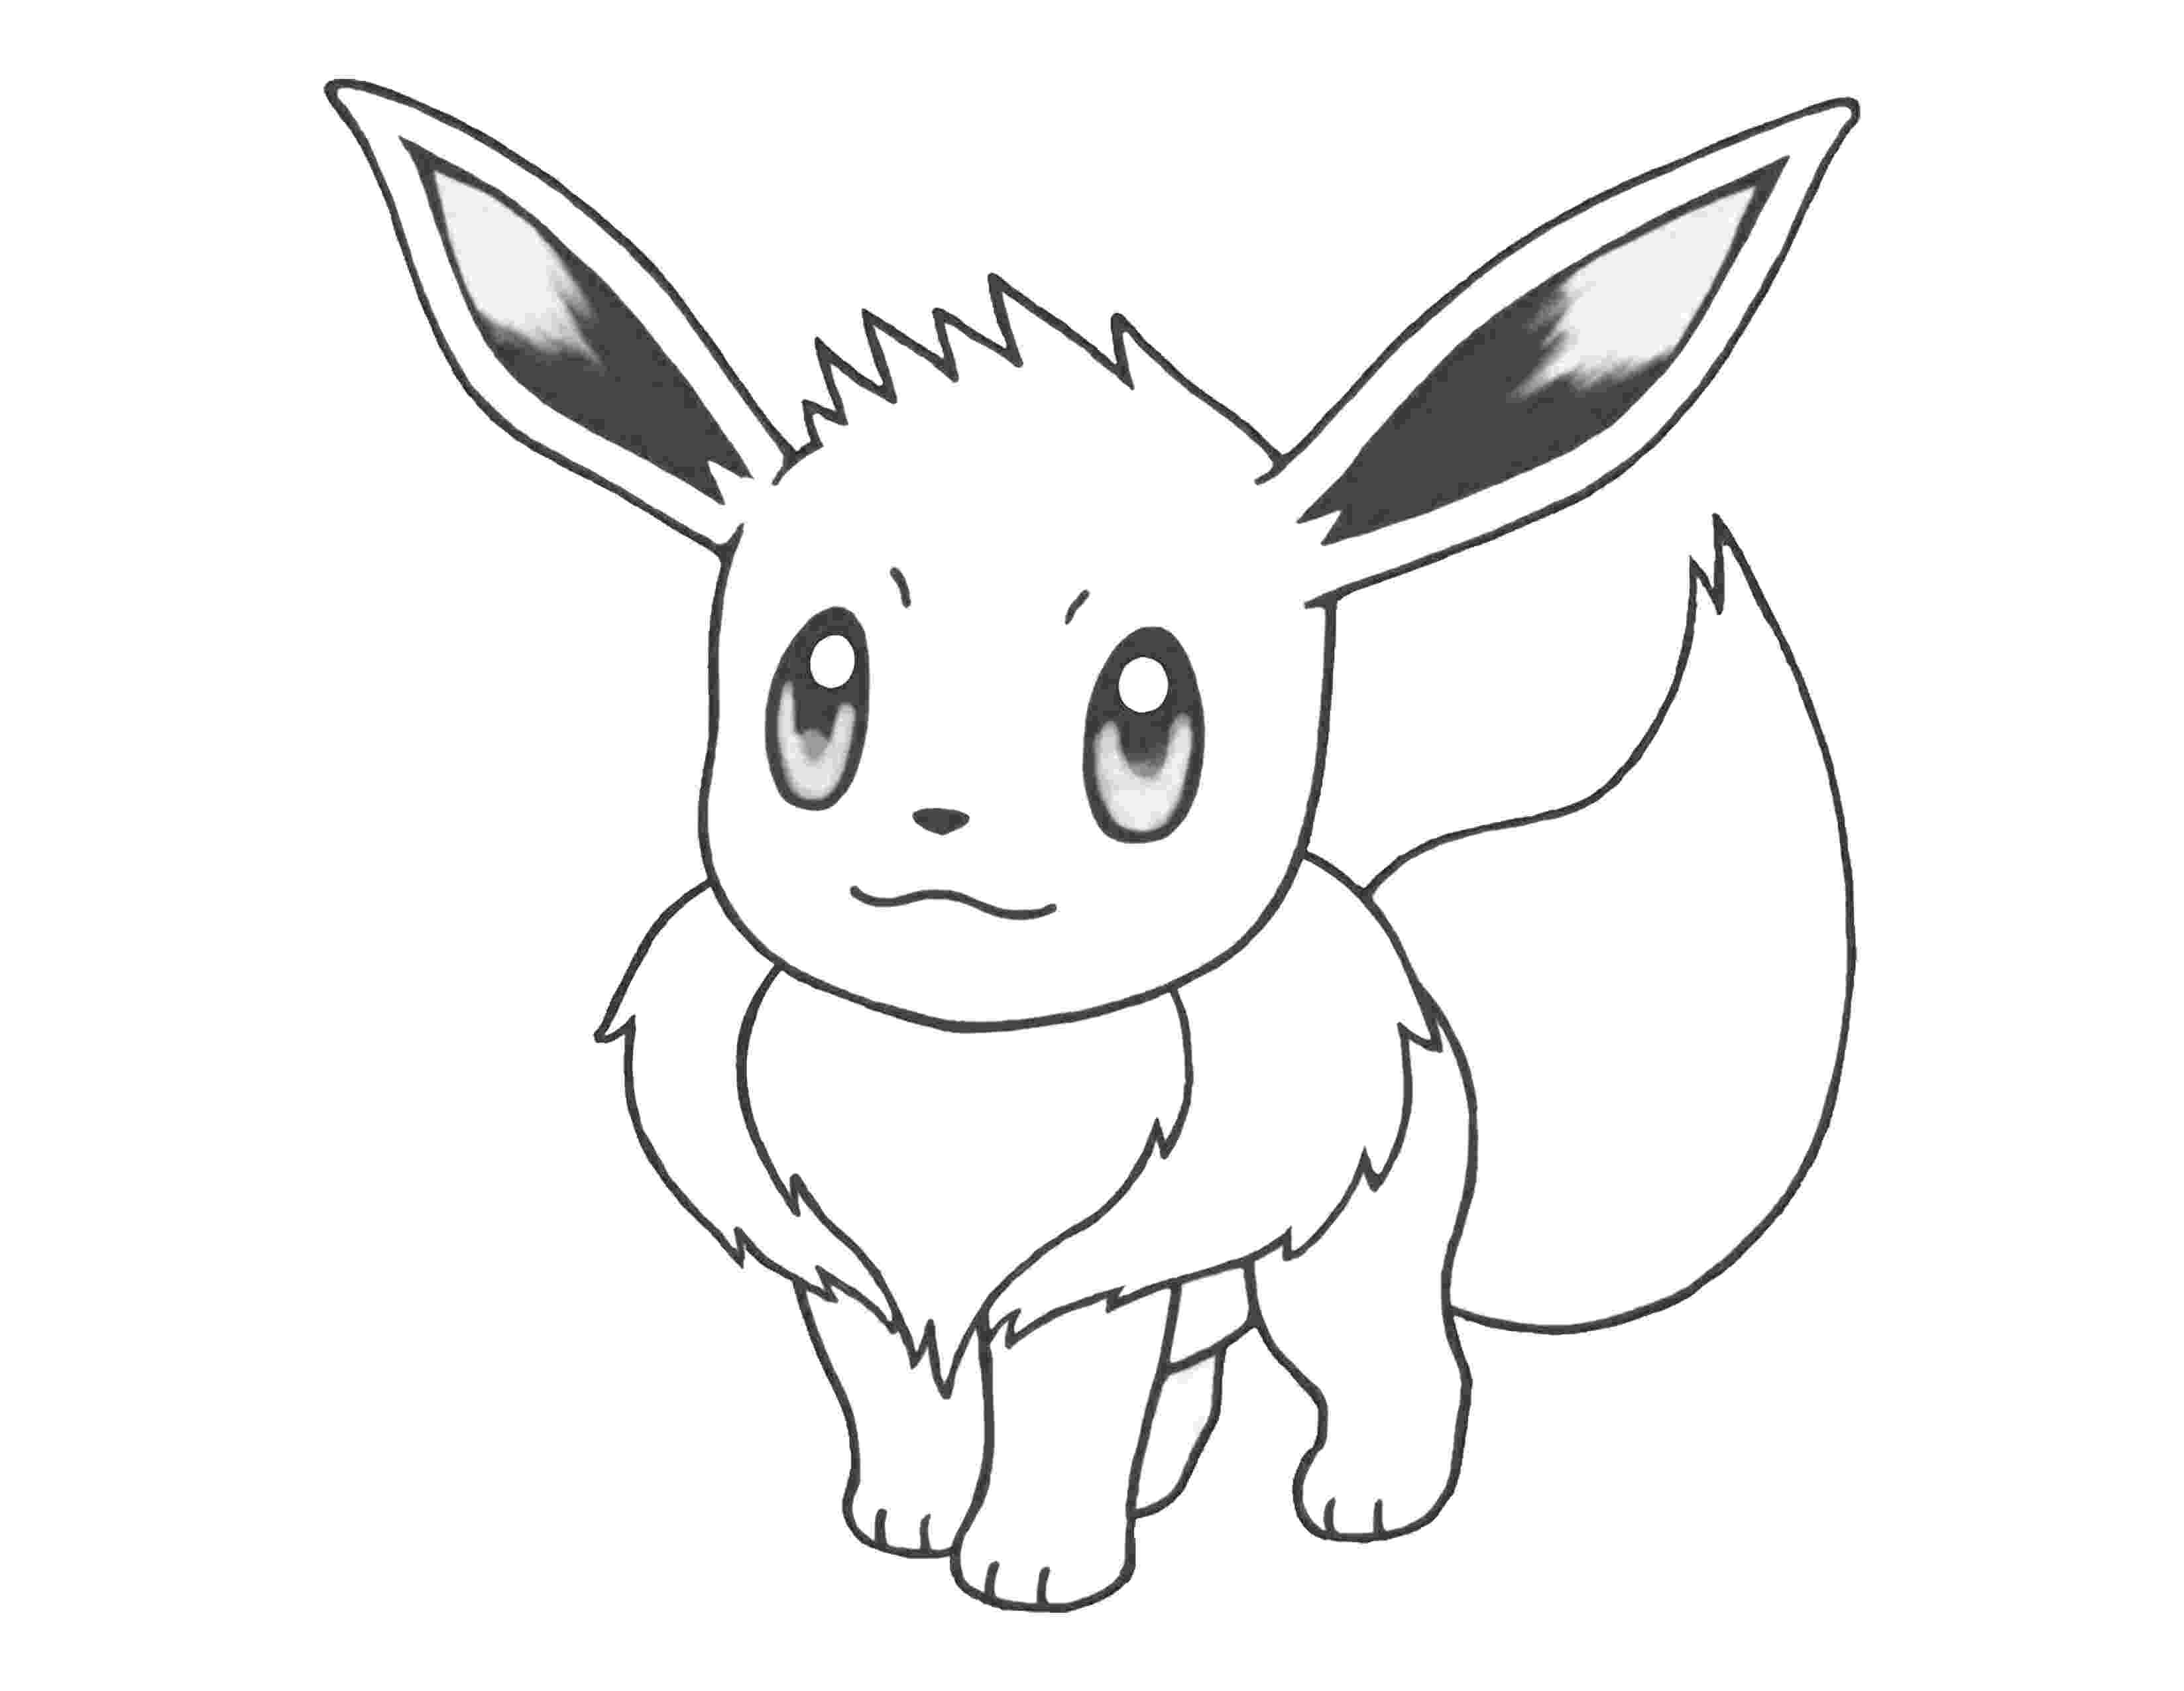 eevee coloring pages eevee coloring page for kids pages coloring eevee